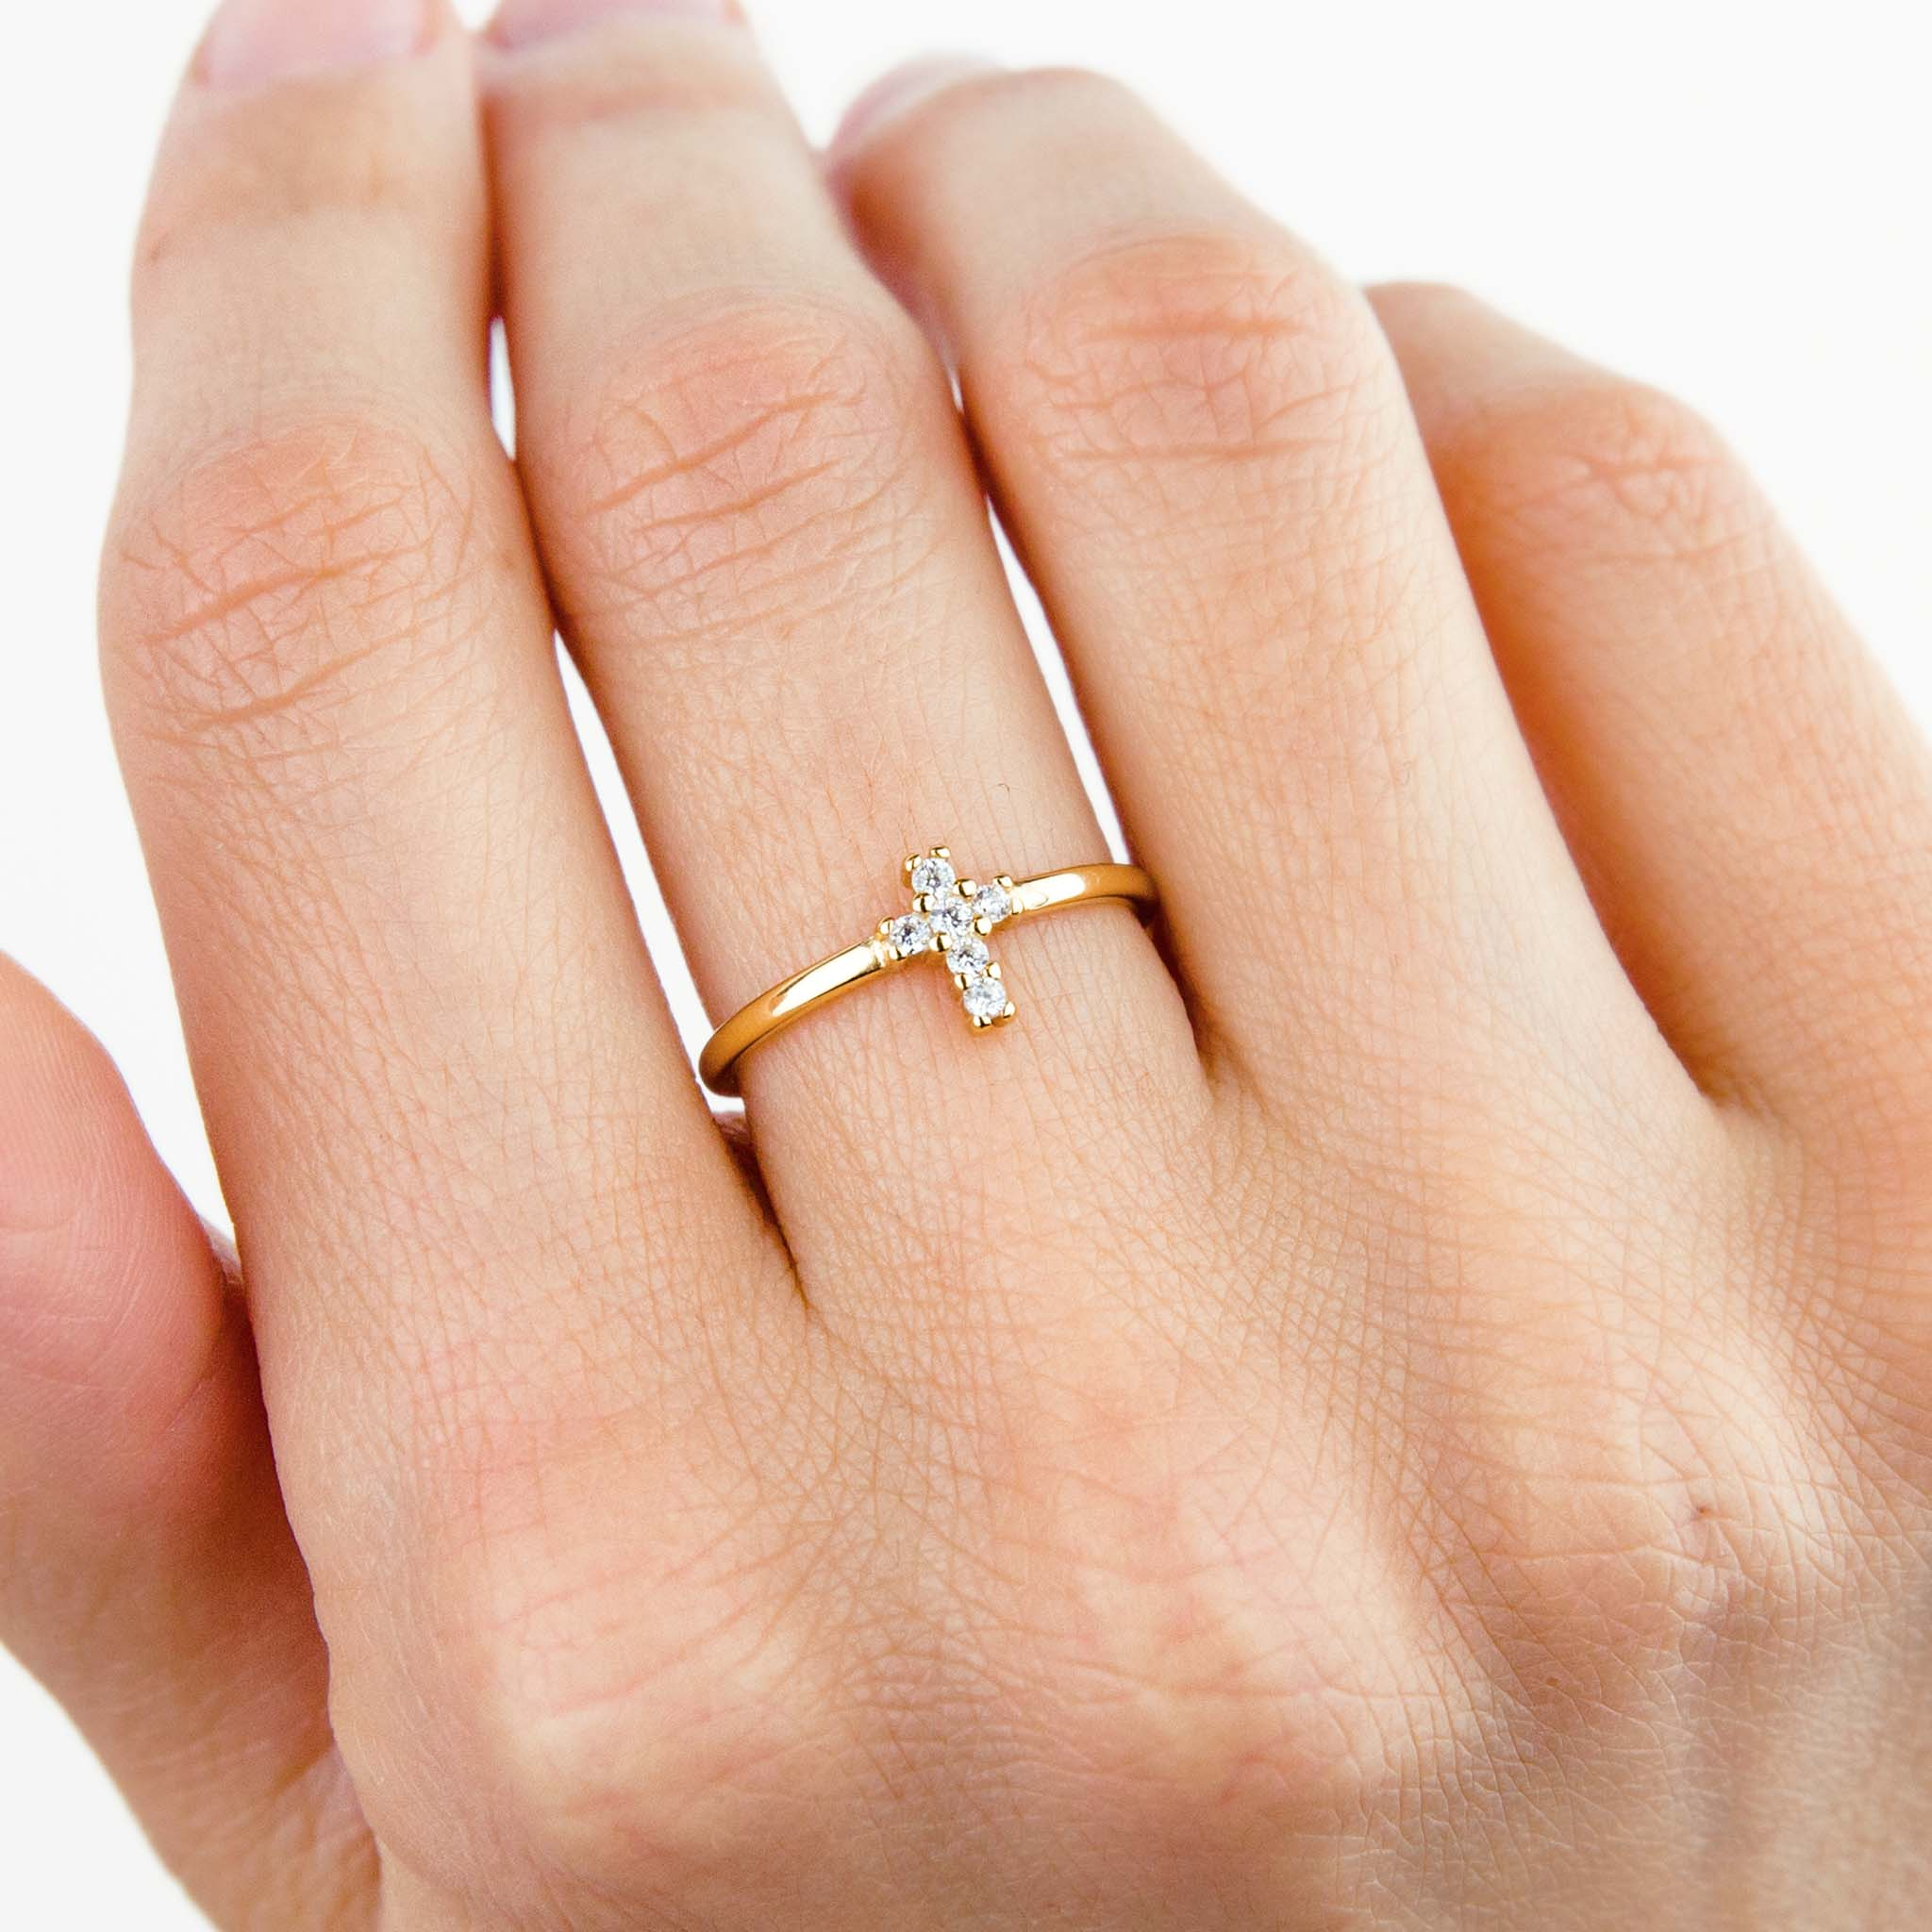 Gold sparkly cross ring